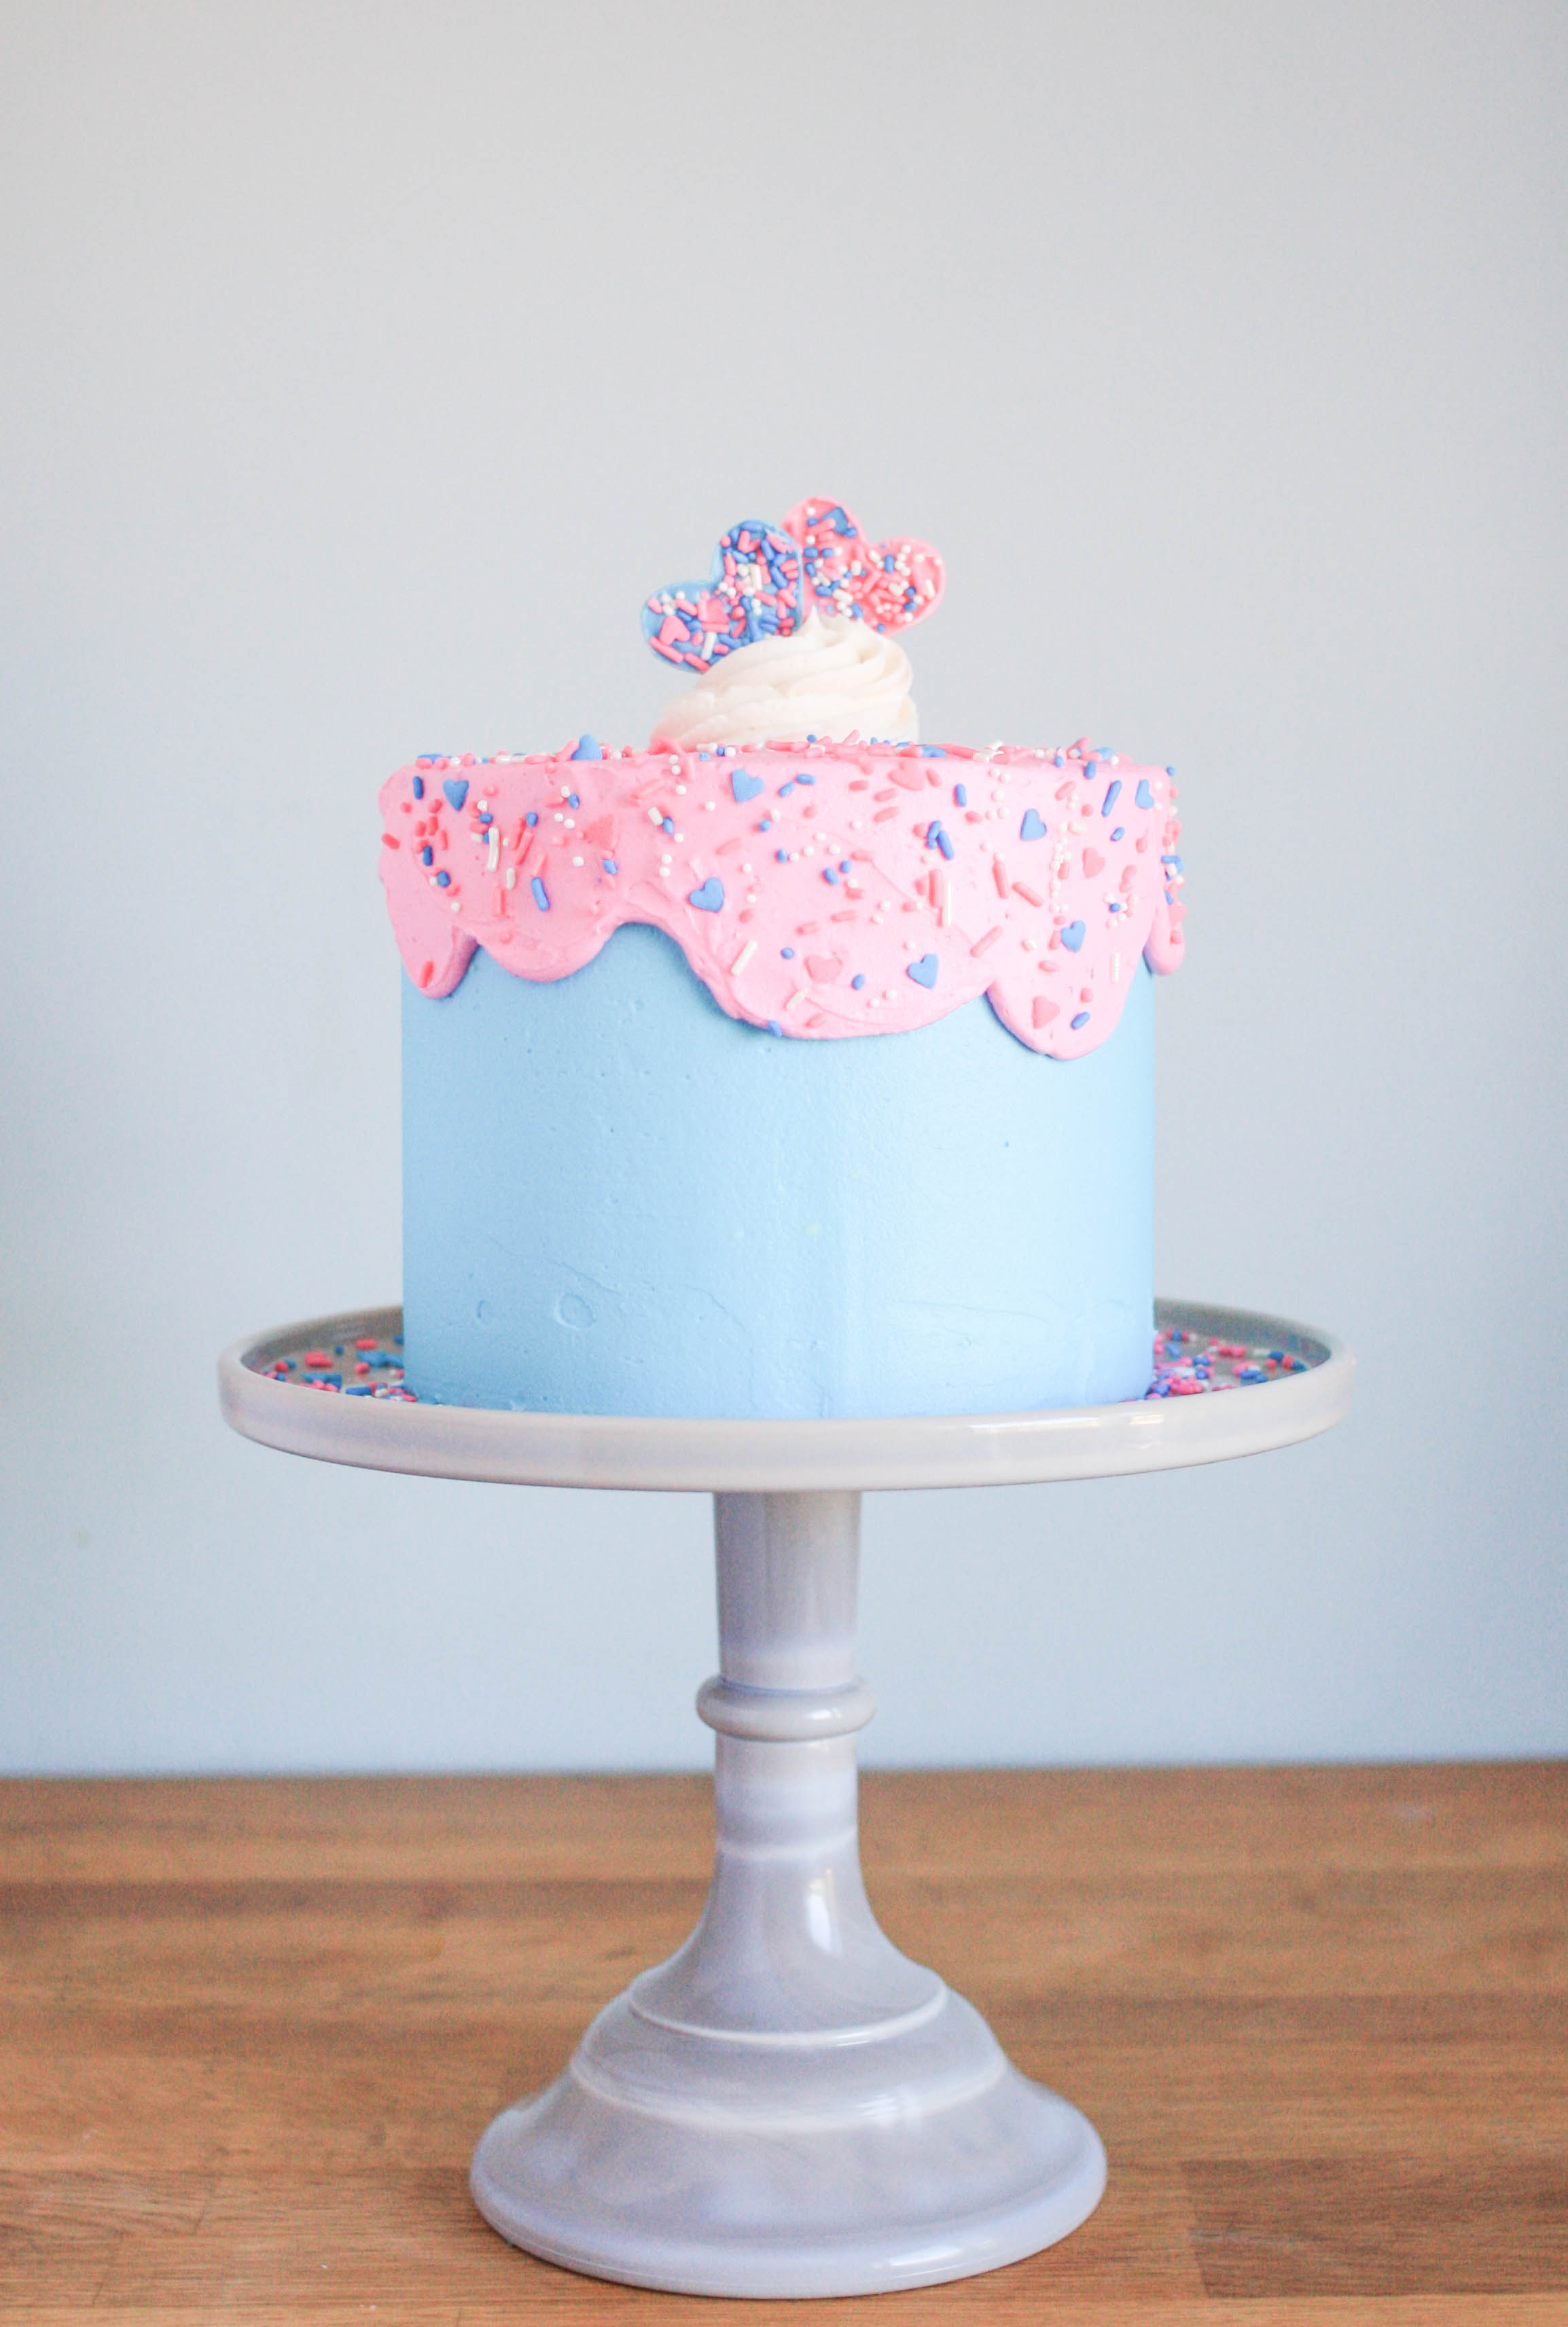 How to Make a Gender Reveal Cake | Erin Gardner | Bluprint